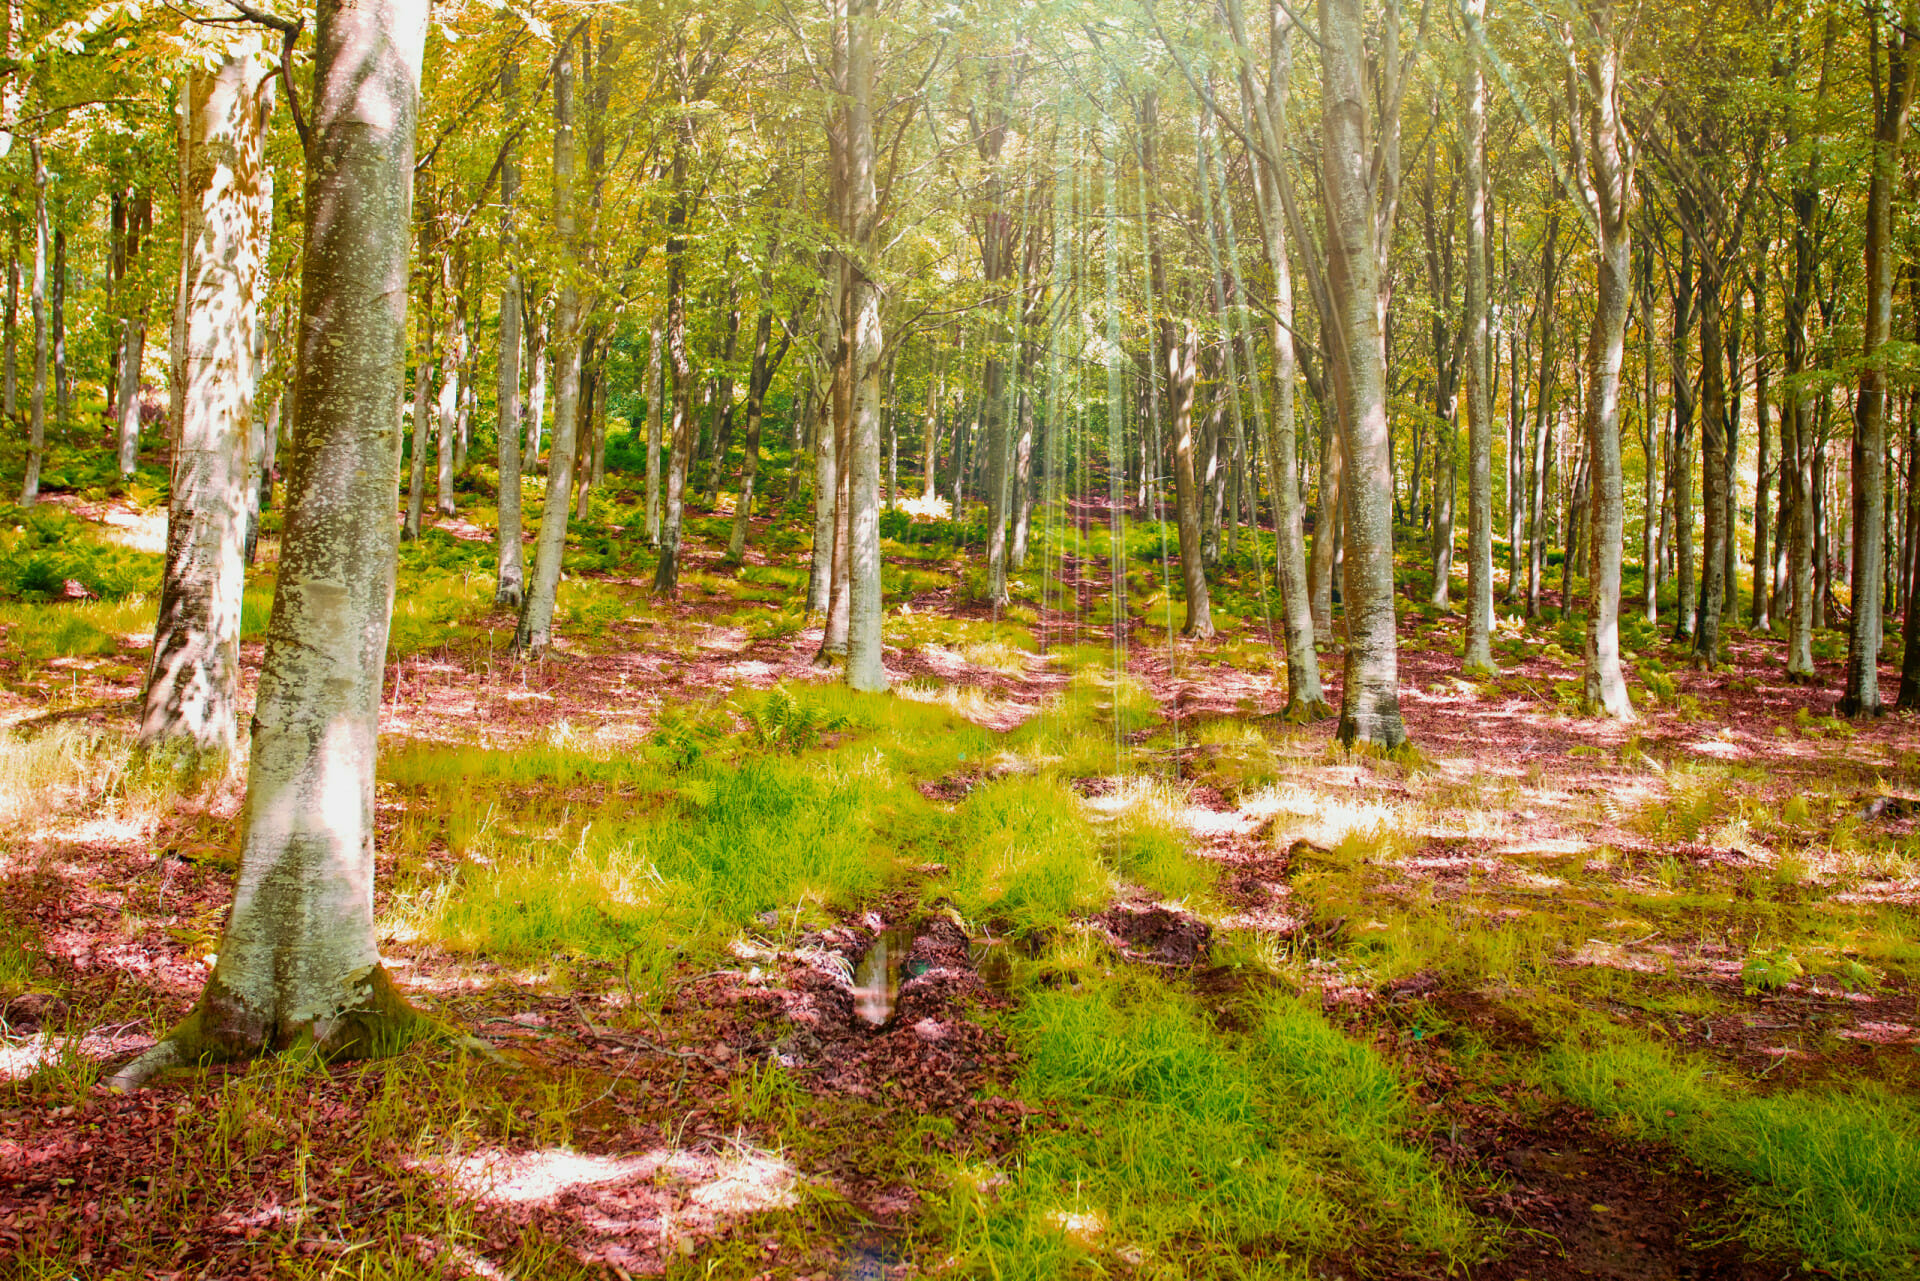 Sunny forest glade with sunrays